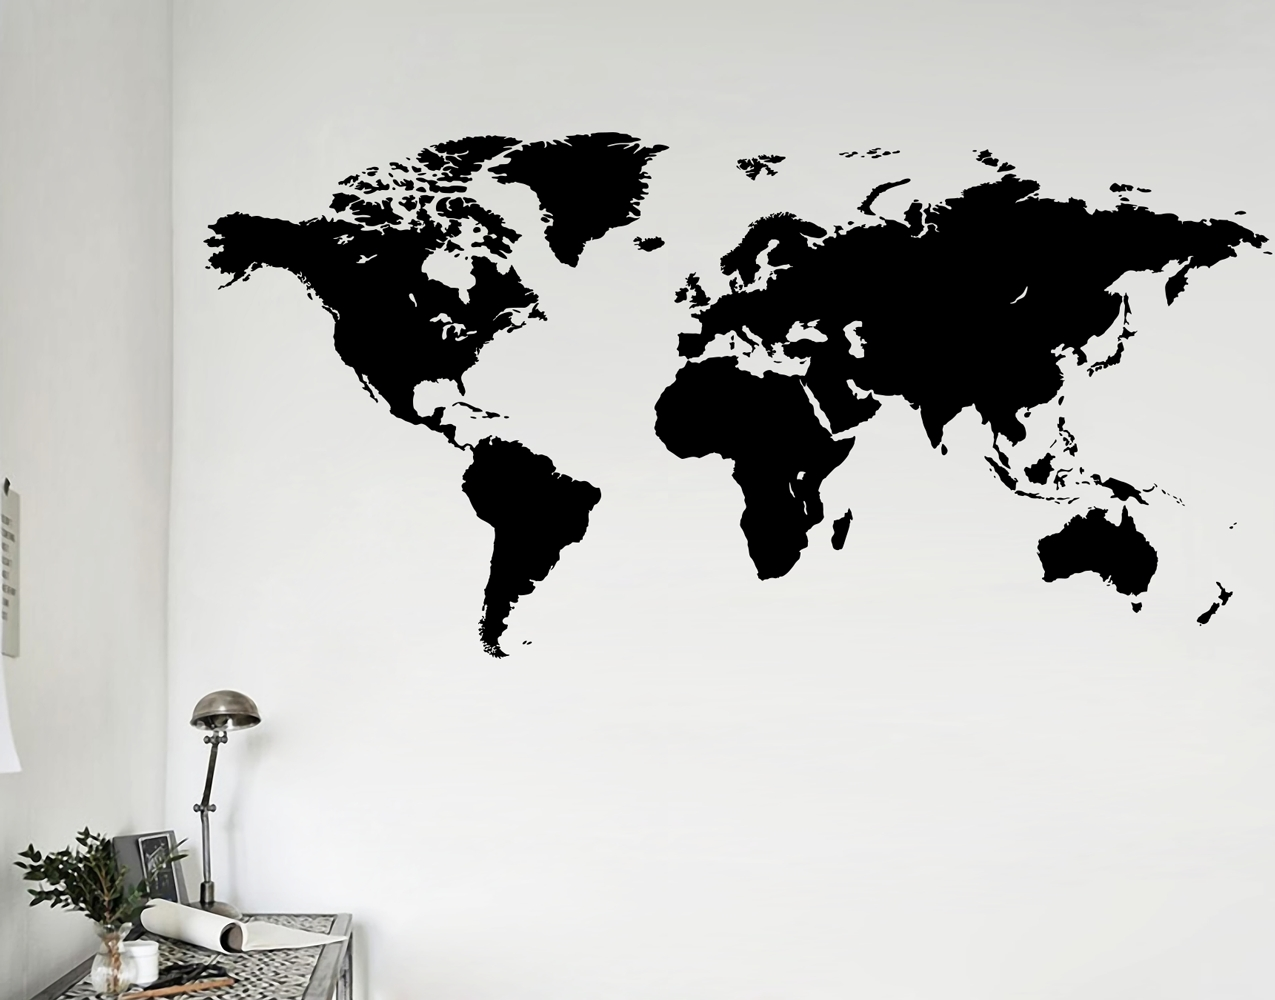 World Map – Your Decal Shop | Nz Designer Wall Art Decals | Wall With Regard To Most Current World Map Wall Art (View 18 of 20)